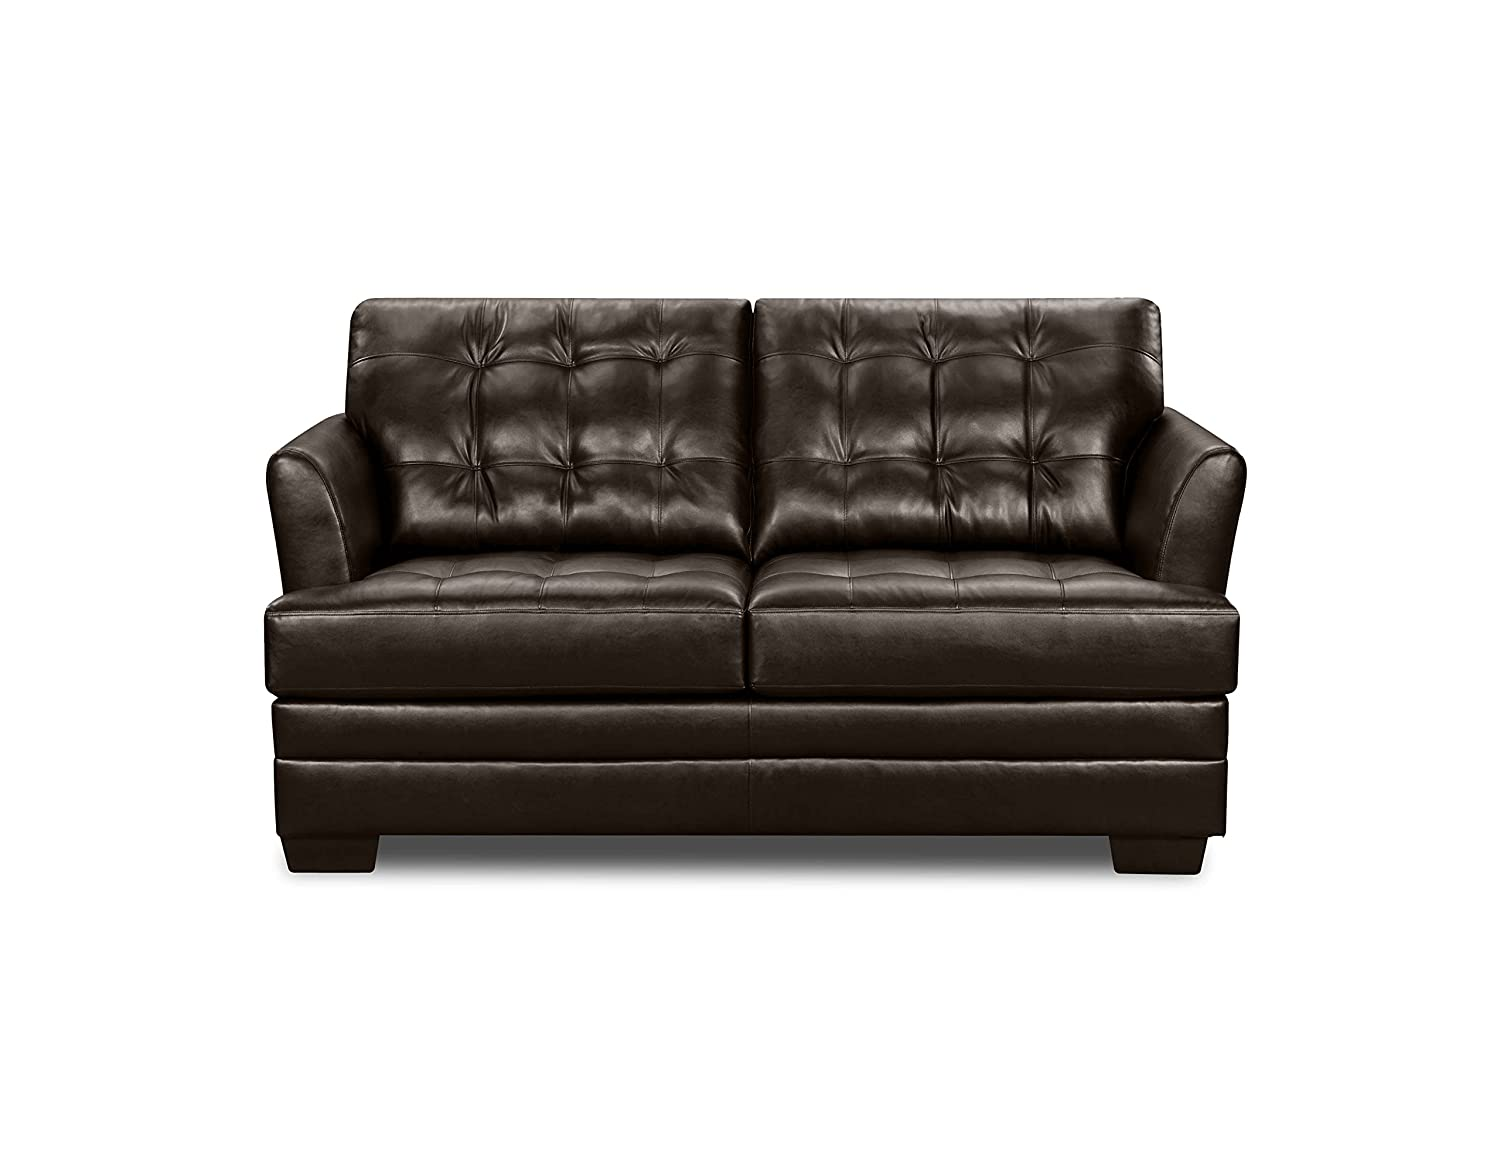 Simmons Upholstery 2055-04F-Full Manhattan Espresso Full Hide-A-Bed